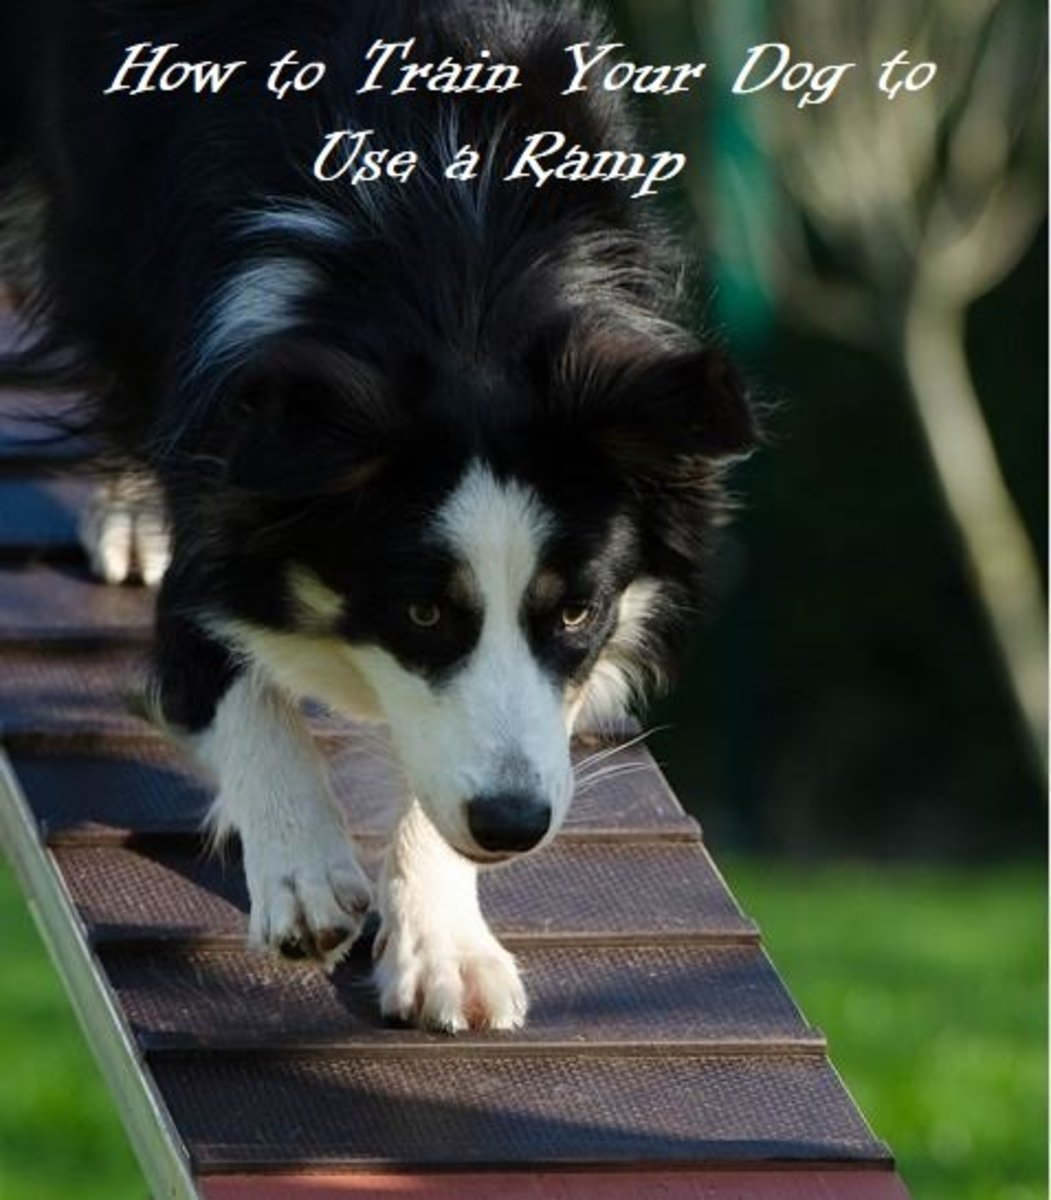 Training a dog to use a ramp to go up a truck or car is a similar process of training a dog to use a ramp in the canine sport of agility.